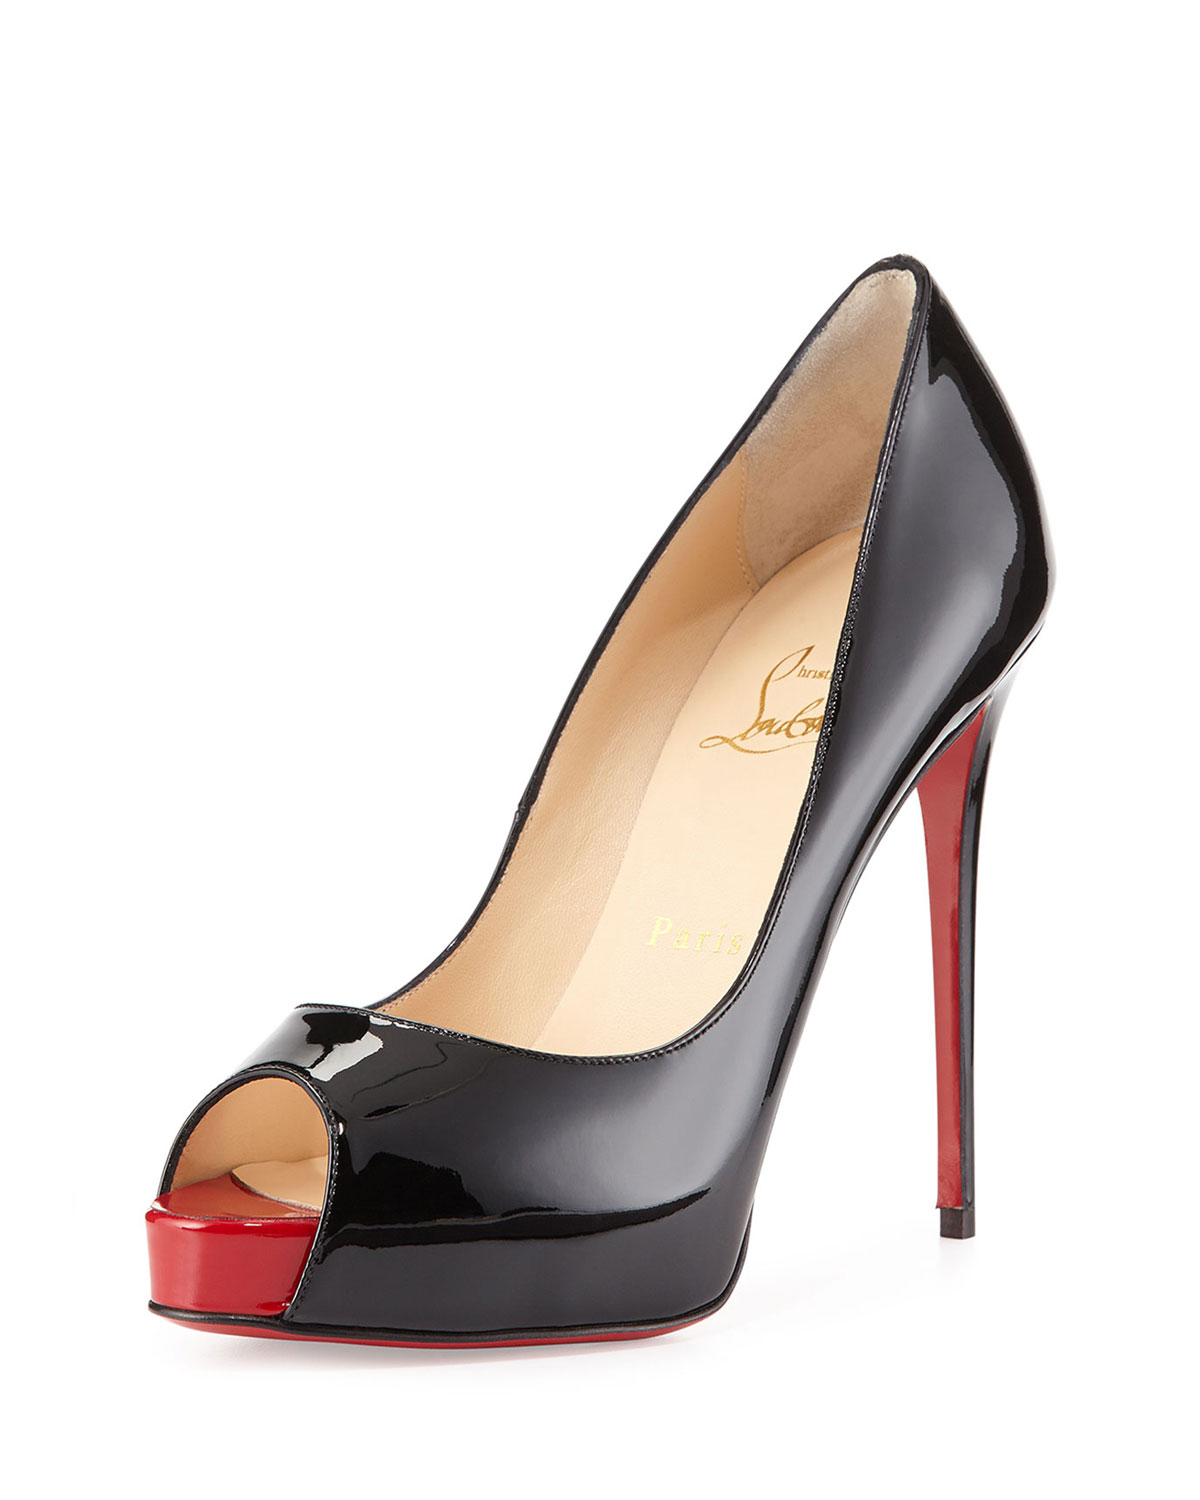 New Very Prive Patent Red Sole Pump, Black/Red - Christian Louboutin